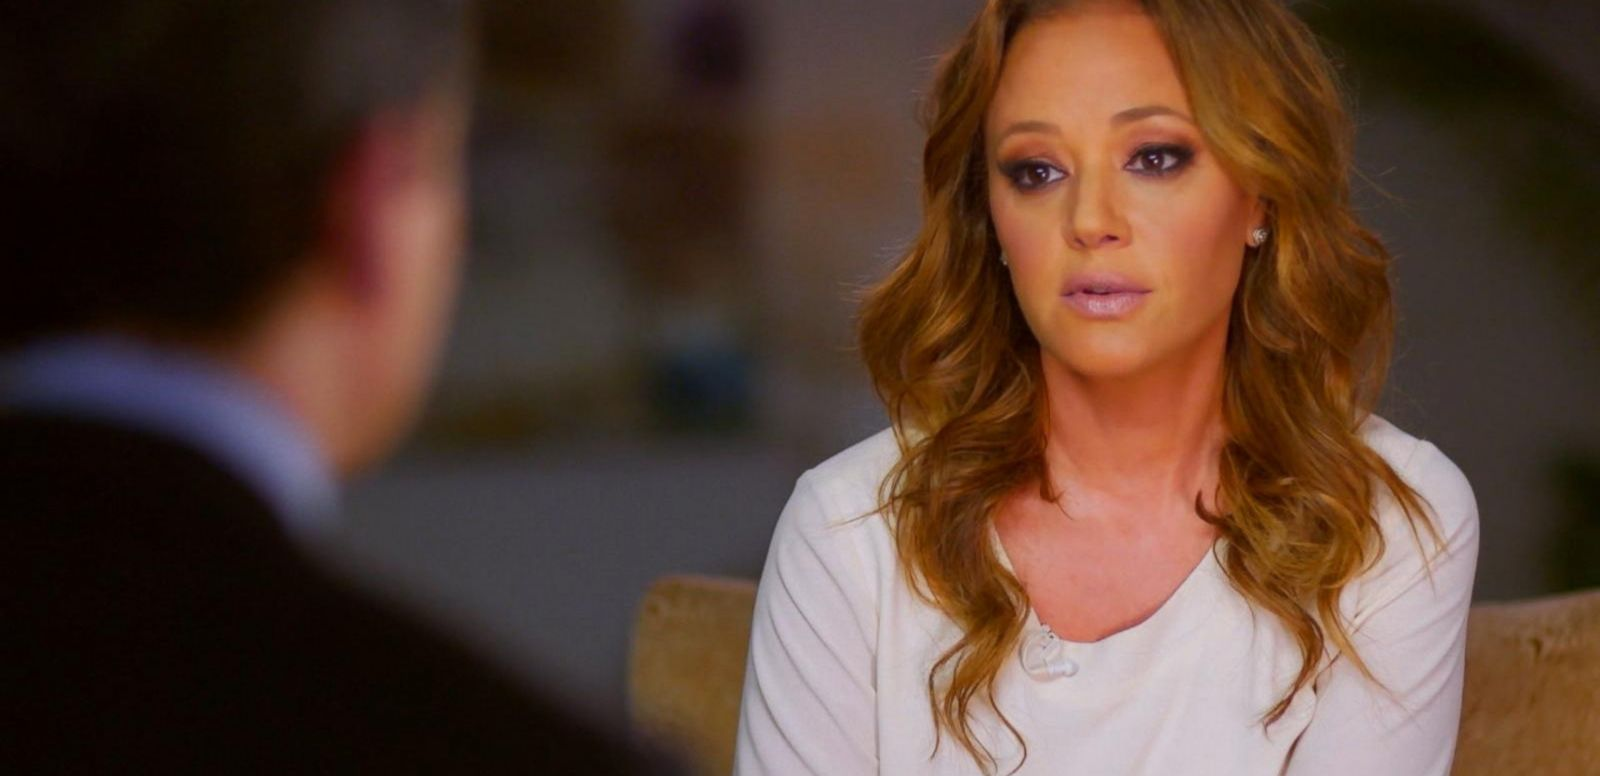 VIDEO: Leah Remini Offered Support to Father of Scientology Leader